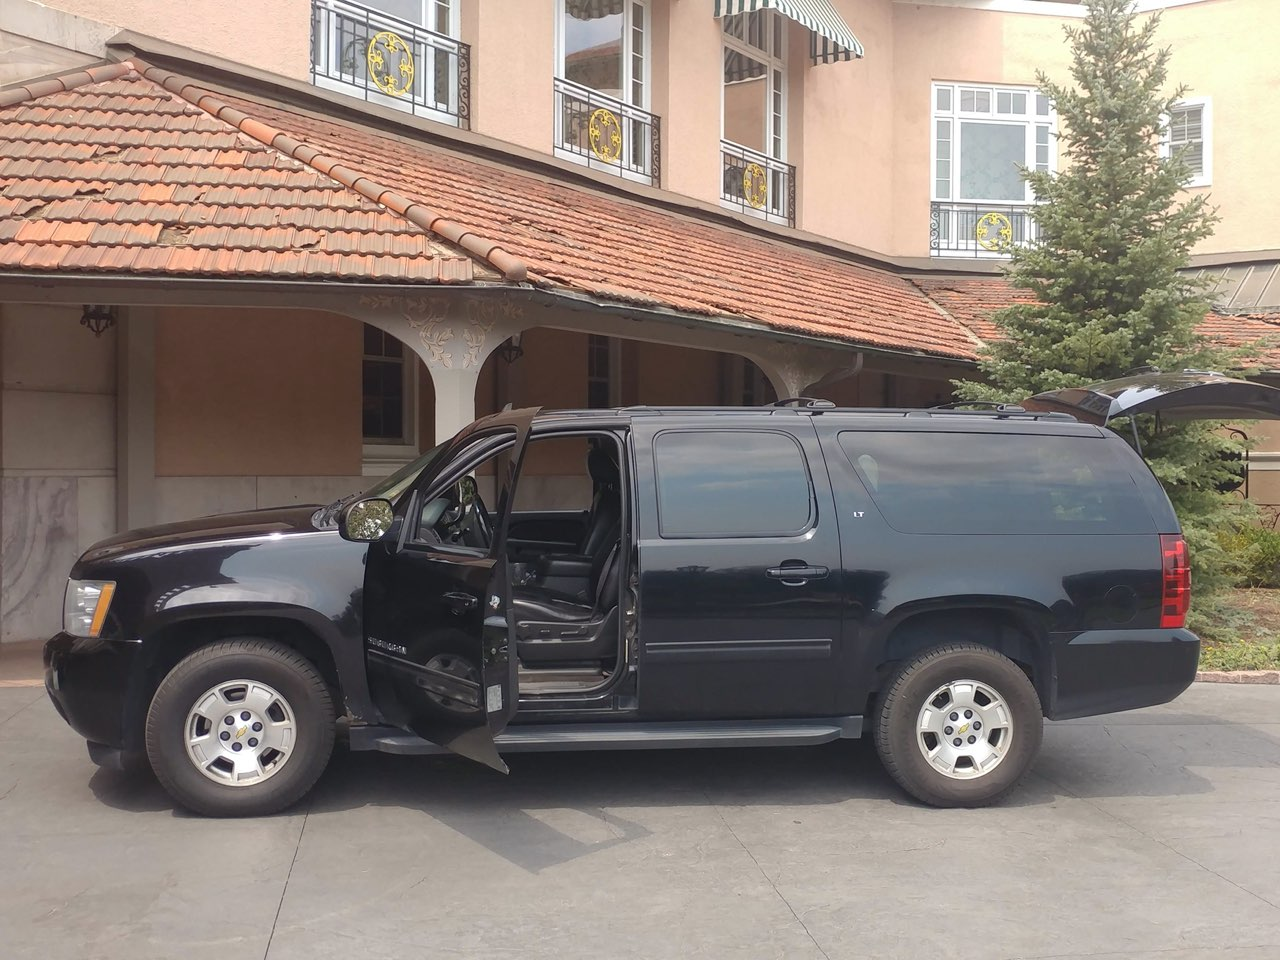 Black SUV outside The Broadmoor after a ride from Denver International Airport (DIA)